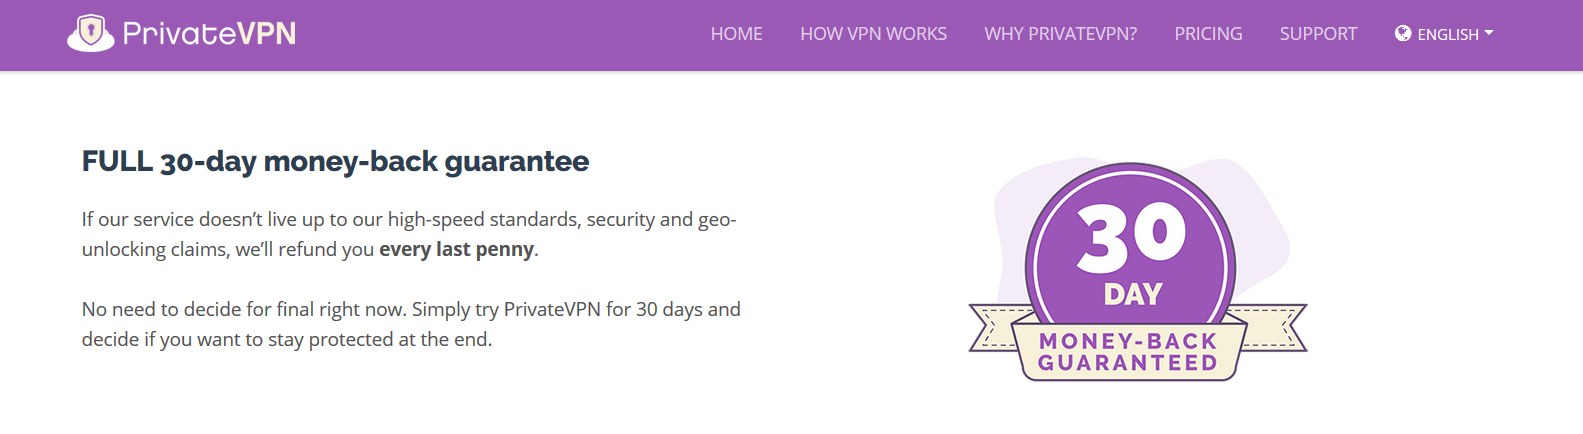 PrivateVPN Supports 30-day Money Back Guarantee